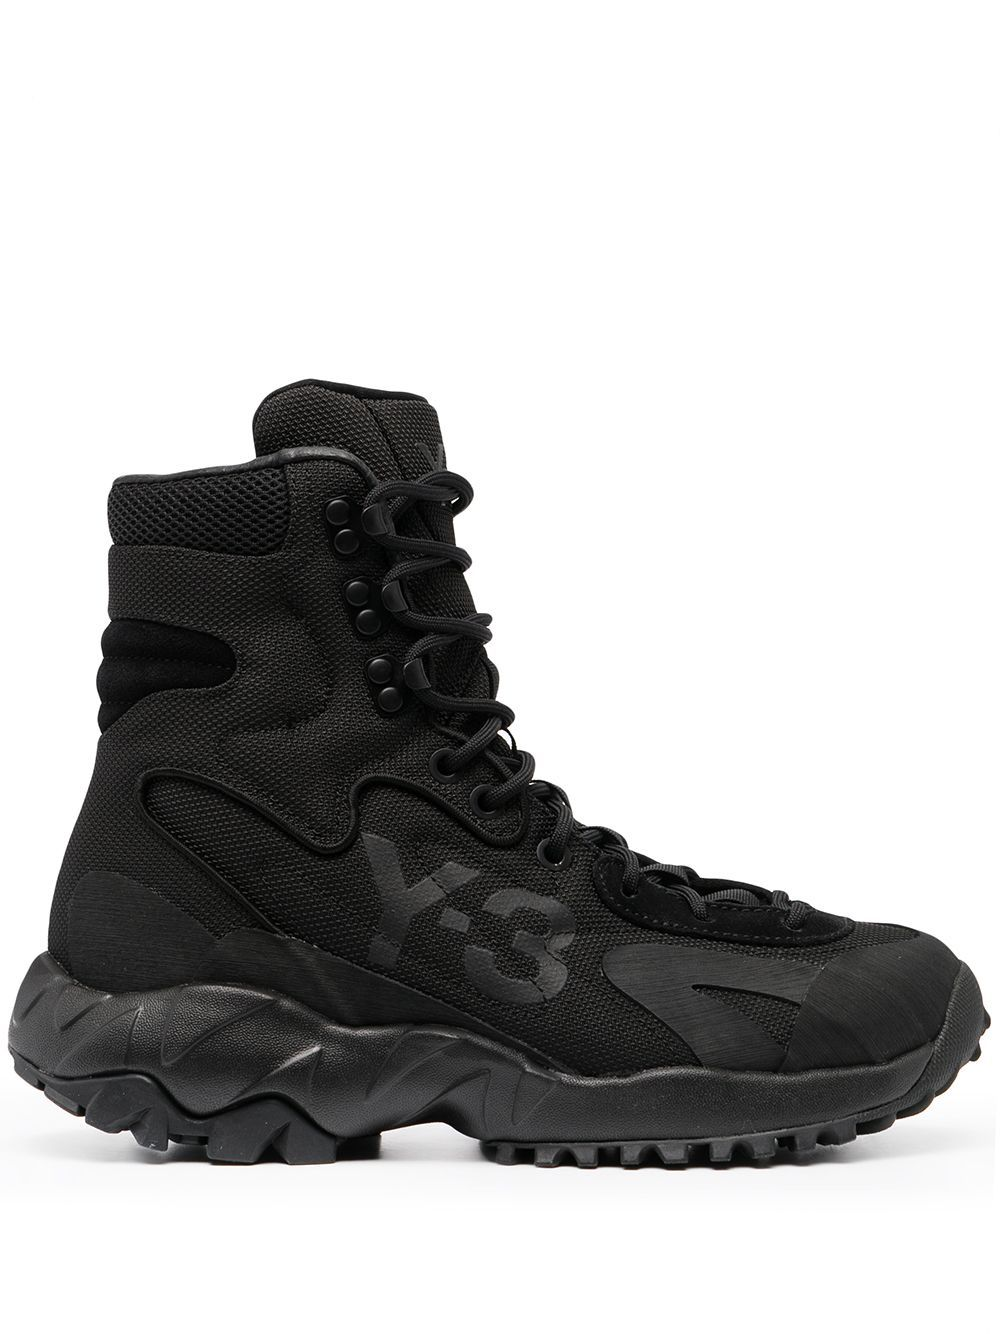 Y 3 Notoma High Top Sneakers Farfetch Boots Black Boots High Top Sneakers